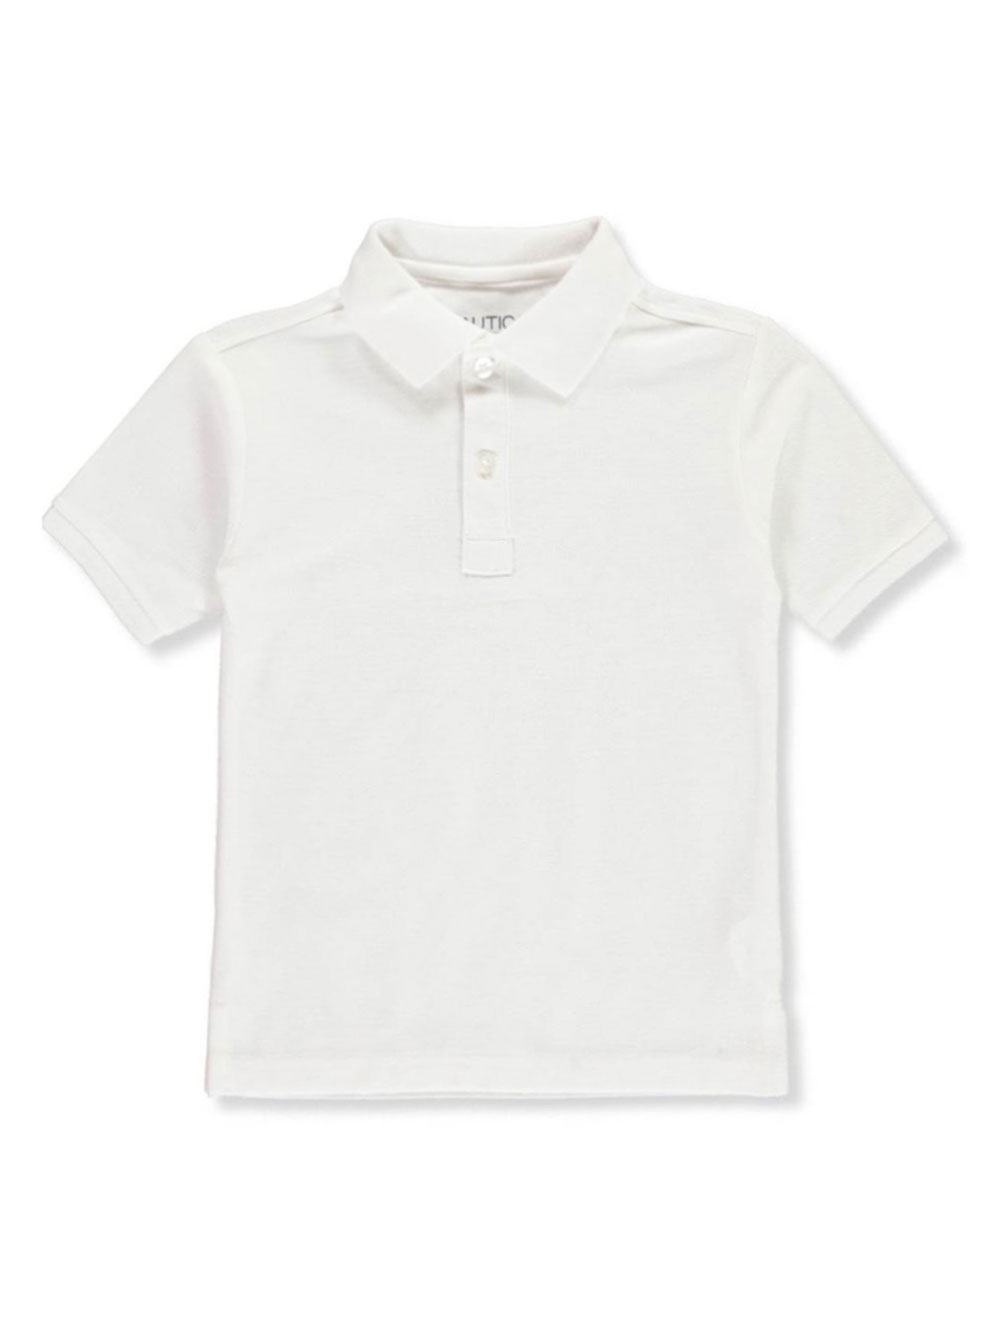 Nautica Little Girls/' Knit Polo with Picot Collar Sizes 4-6X